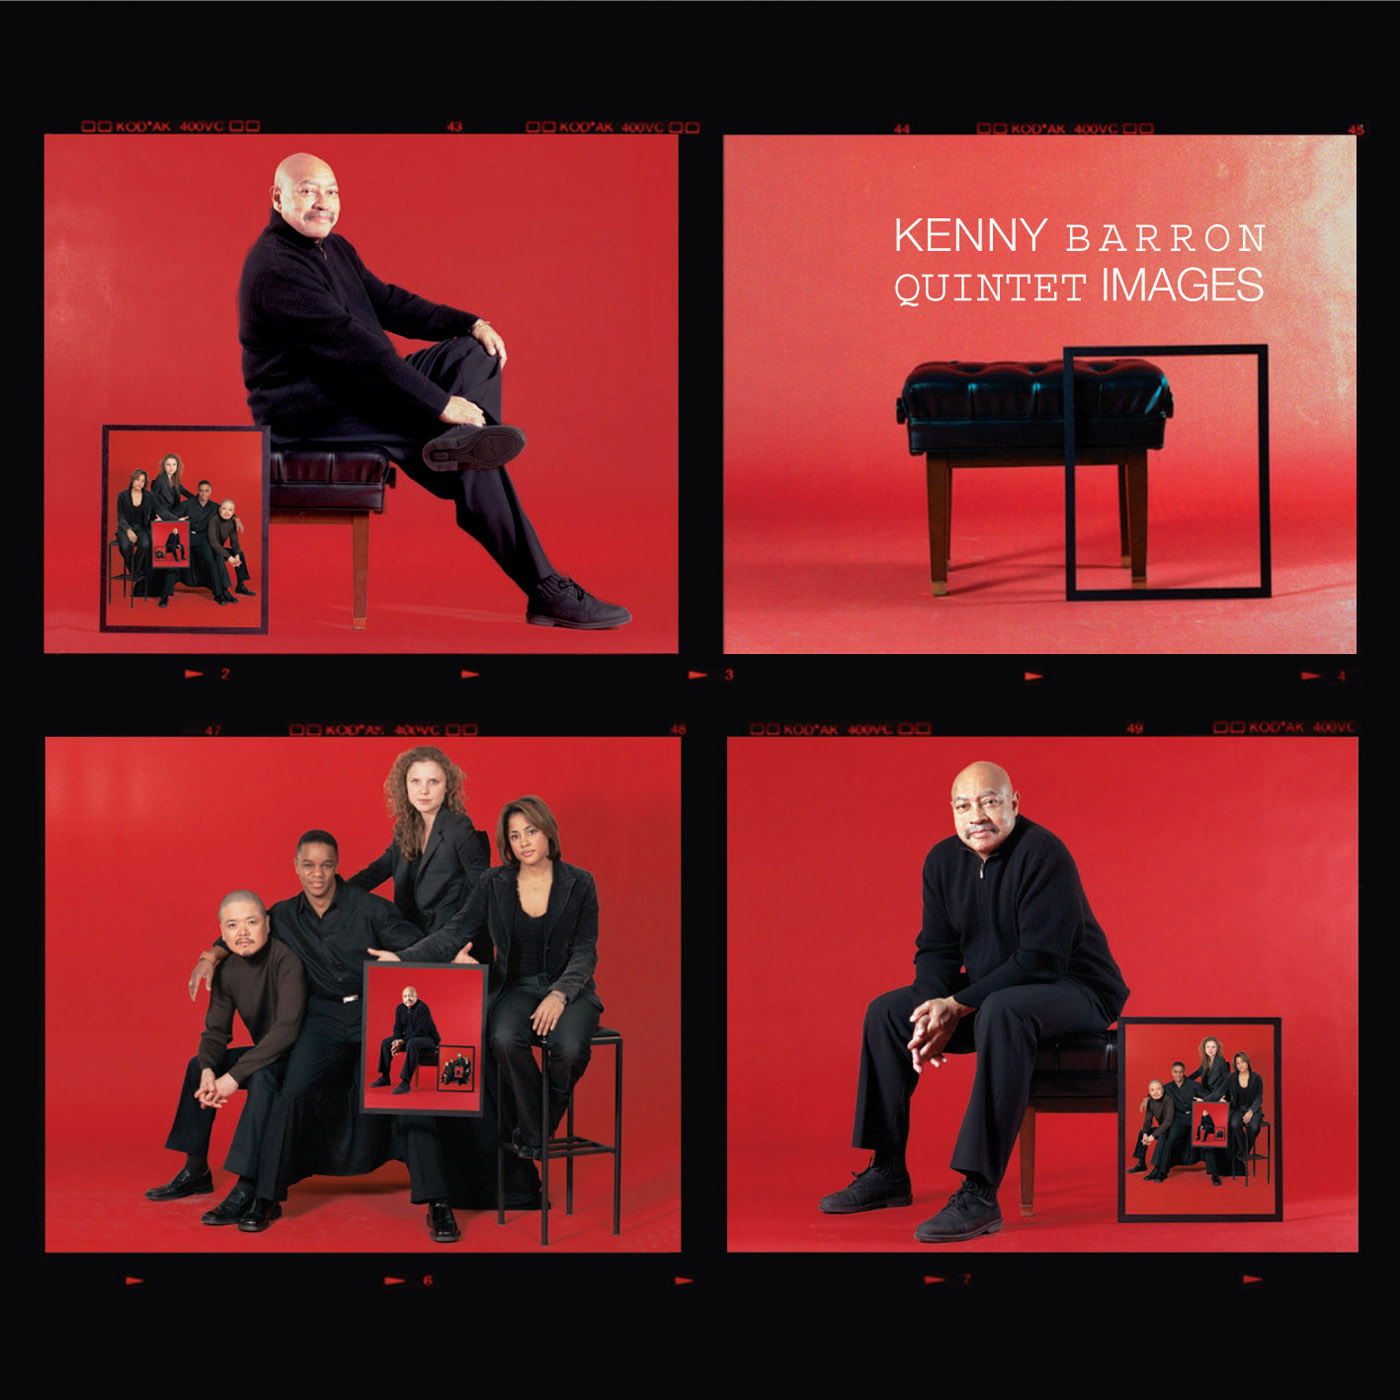 Images by Kenny Barron cover